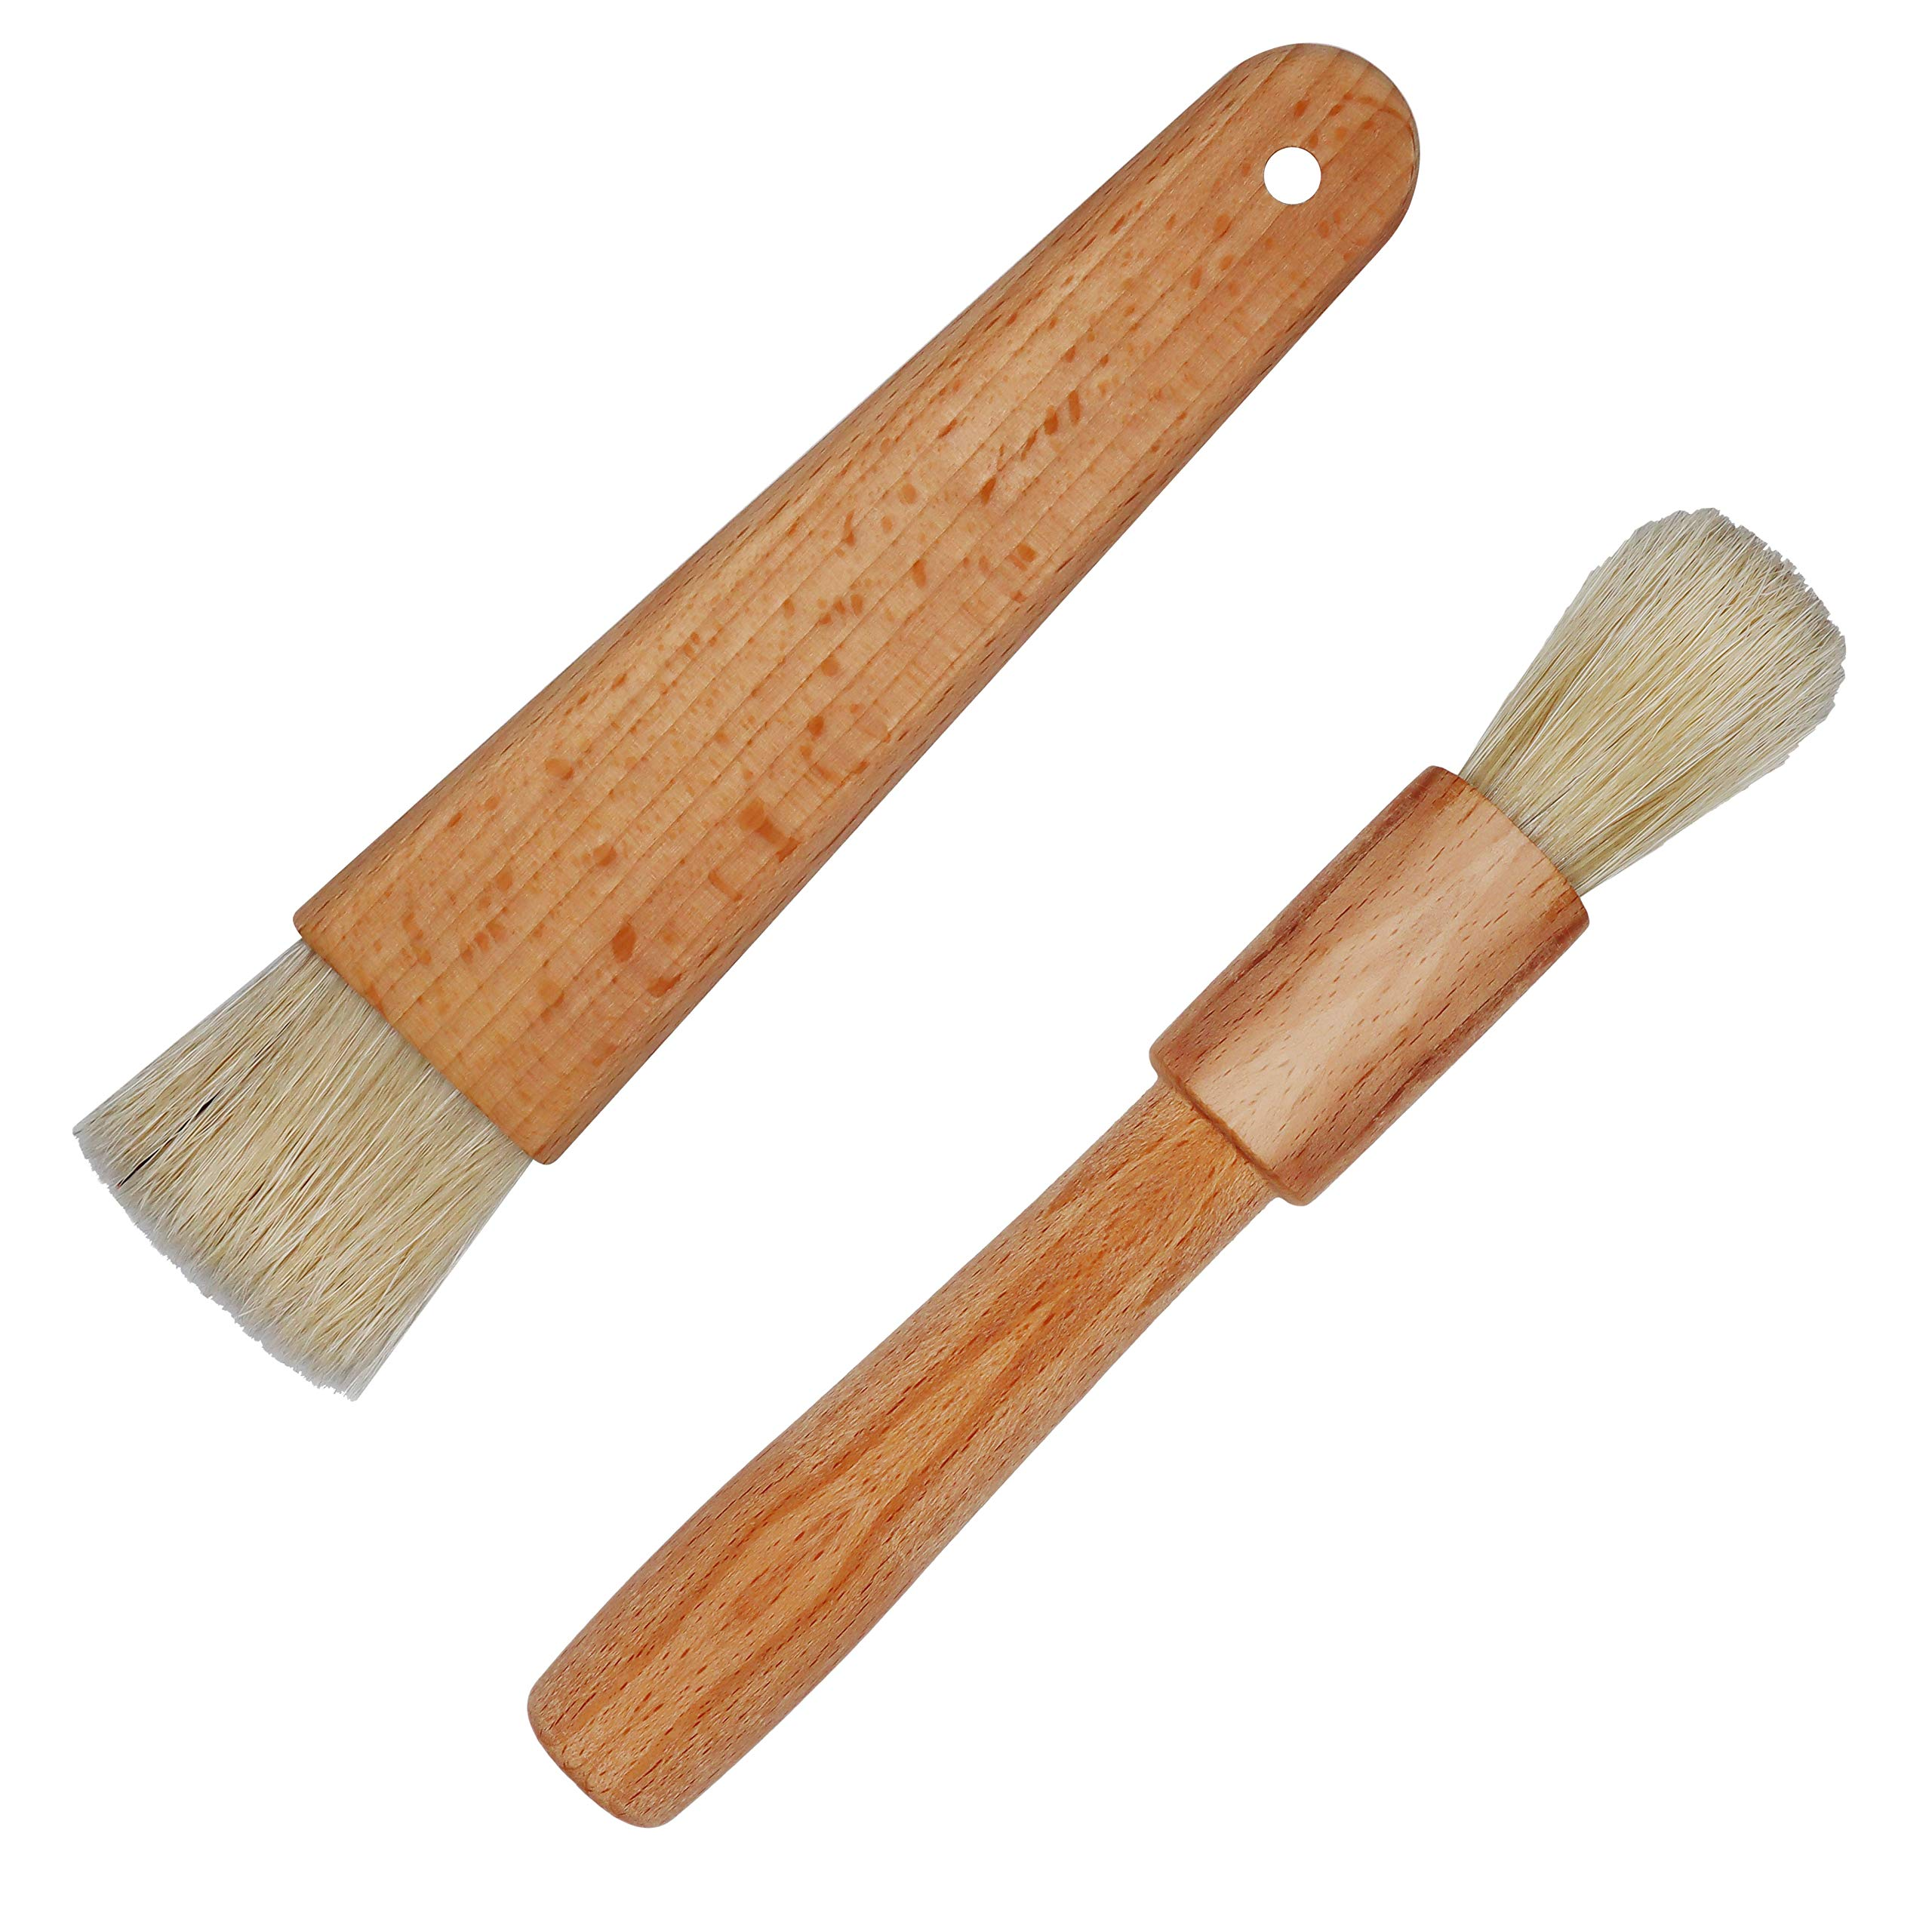 Exceliy 2 Sets Pastry Brushes with Wooden Handle Natural Bristles for Basting Spreading Butter Oil in Barbecue Baking Kitchen Cooking by EIKS